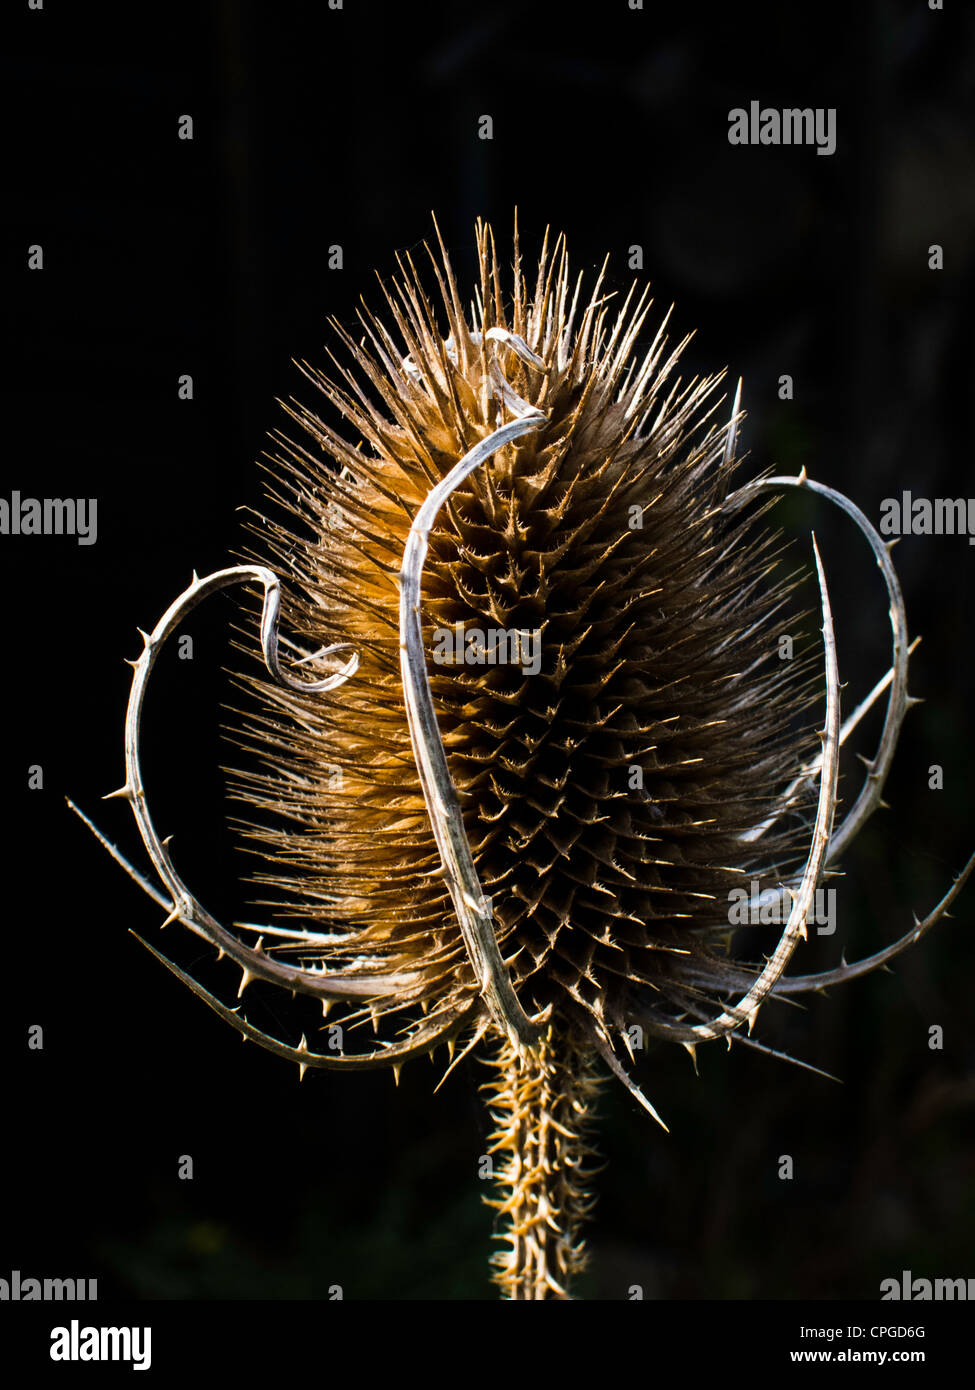 The seed head of a common teasel growing in a garden in South Yorkshire, in the UK - Stock Image